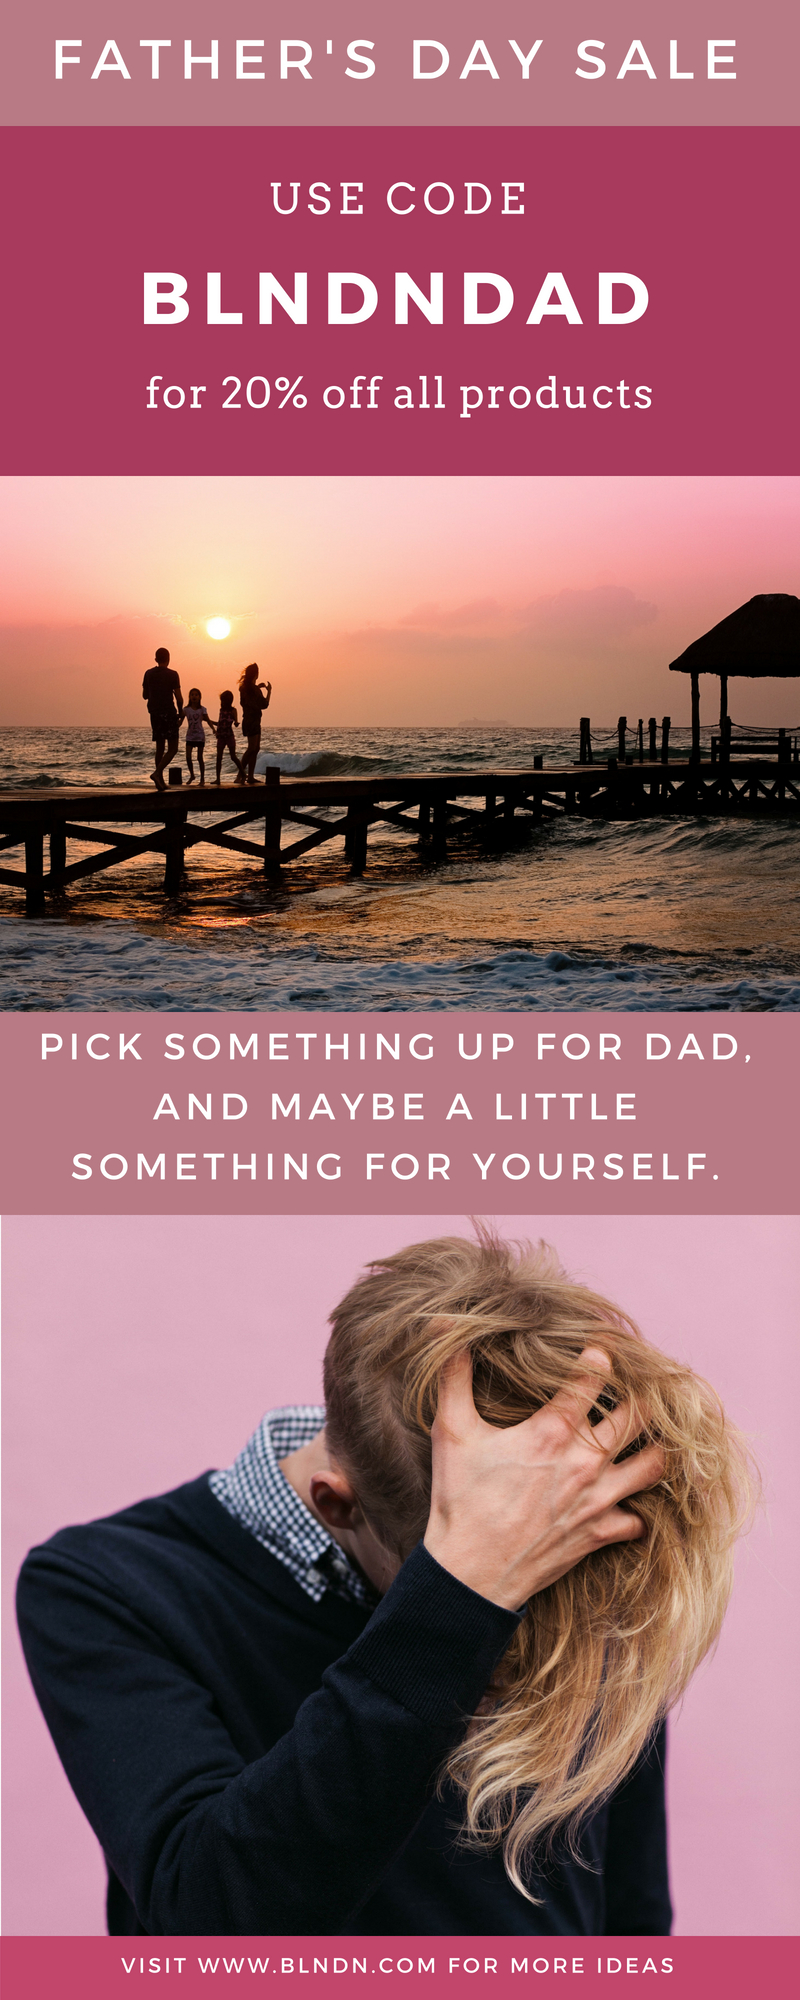 Pinterest FATHER'S DAY SALE.jpg